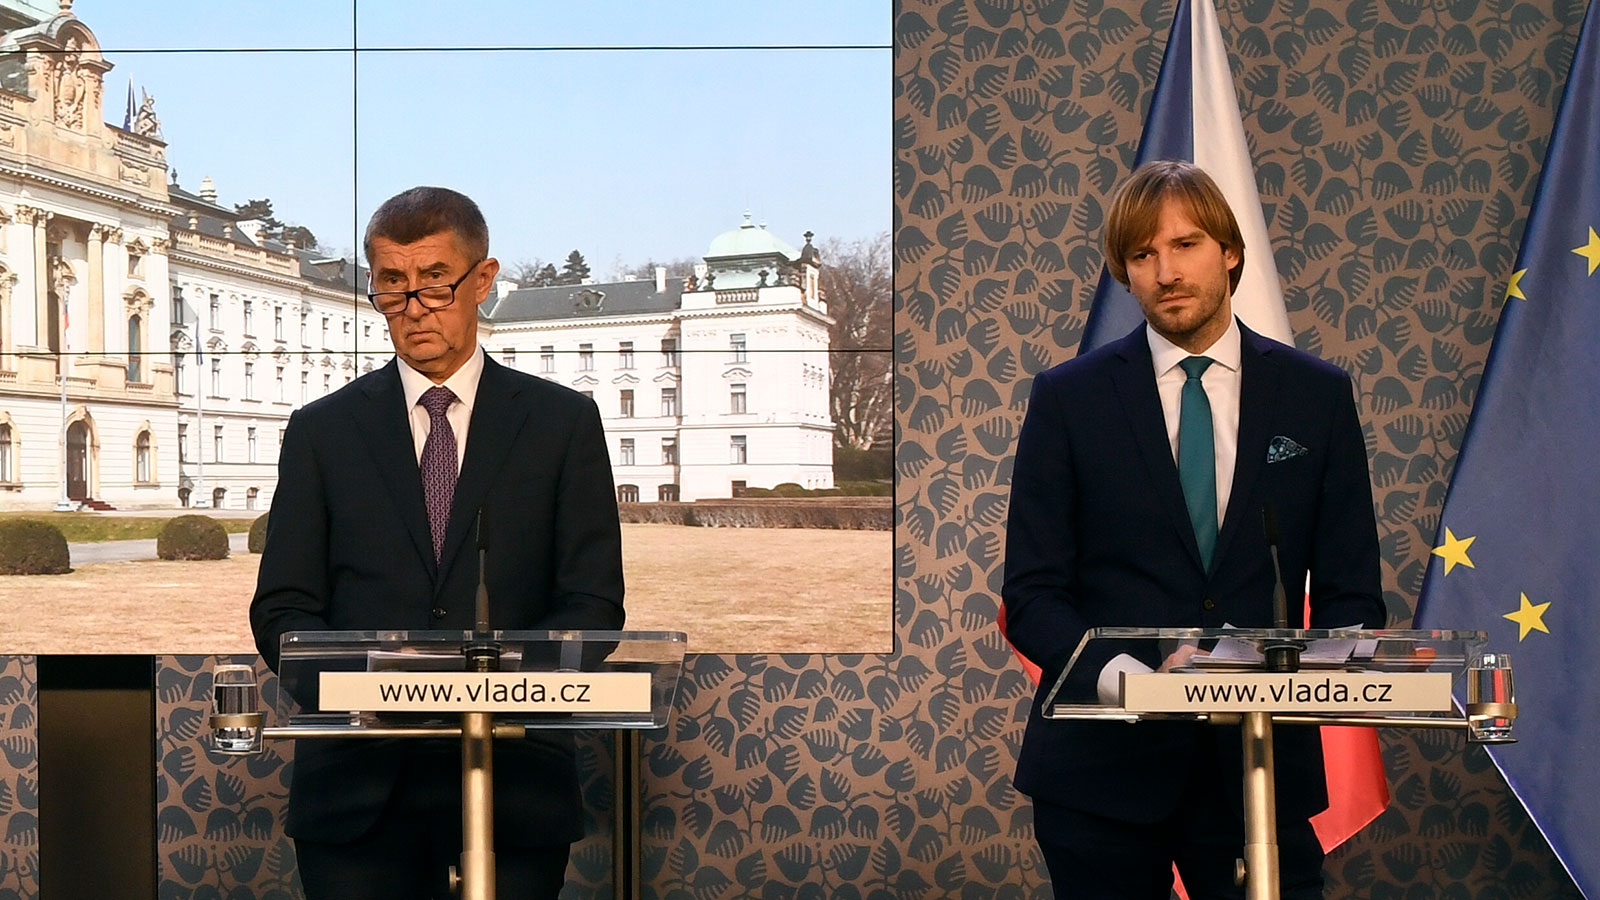 Czech Prime Minister Andrej Babis and Health Minister Adam Vojtech speak at a press conference after a meeting of the Government Security Council in Prague on Monday.